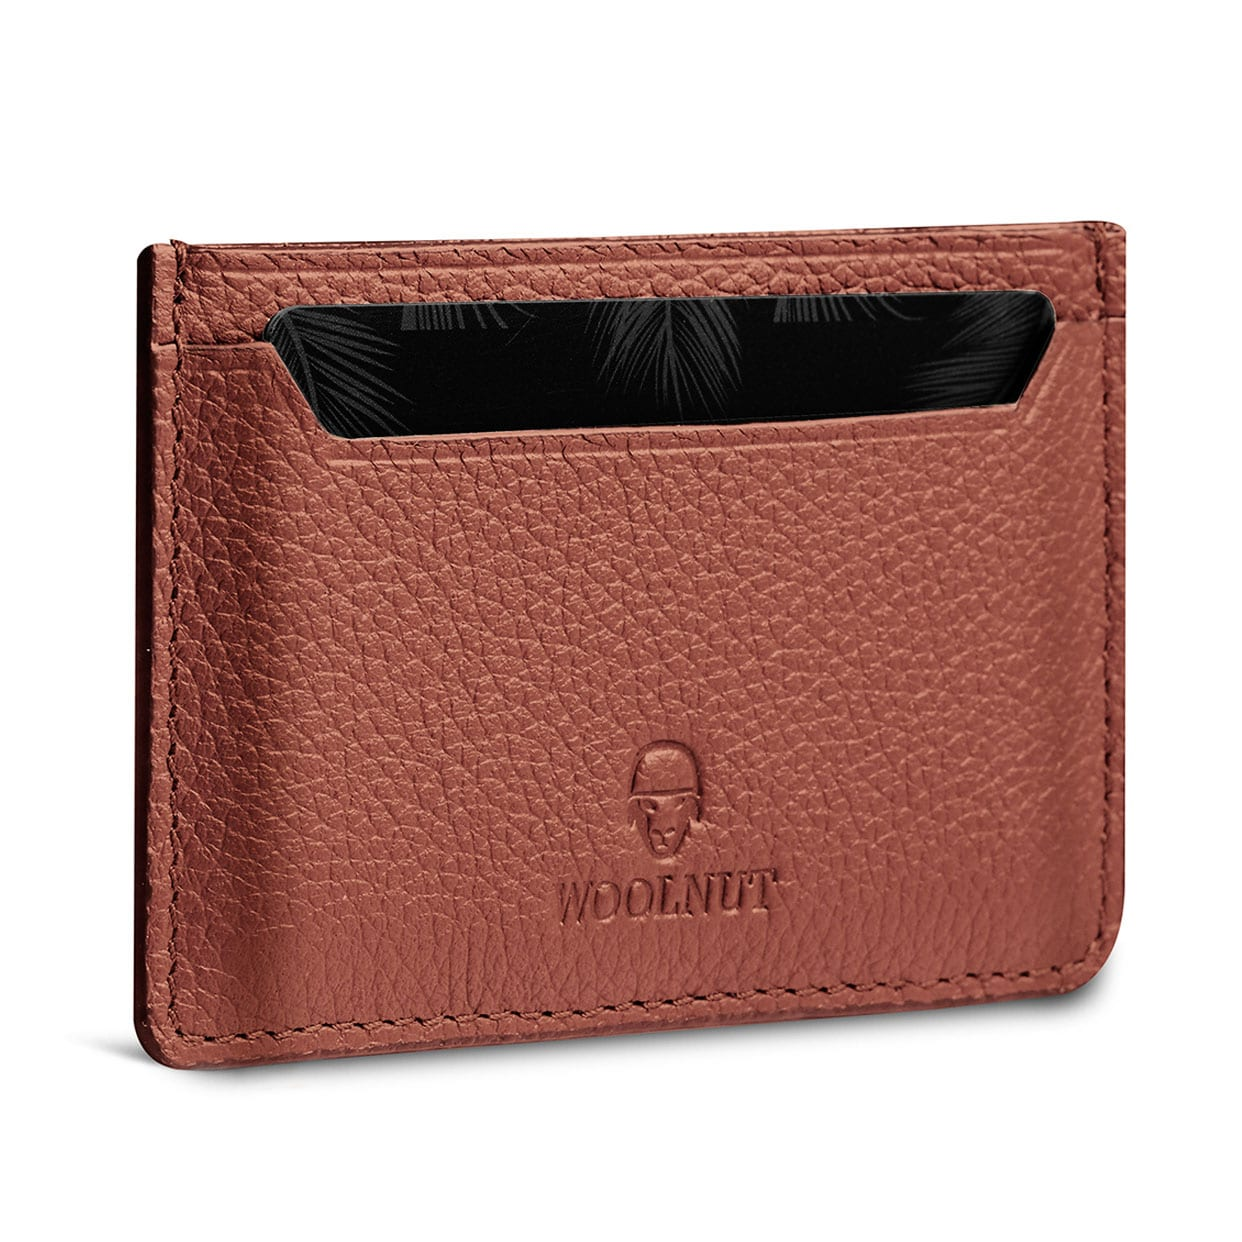 Woolnut Card Holder - Cognac Brown - Netnaturshop